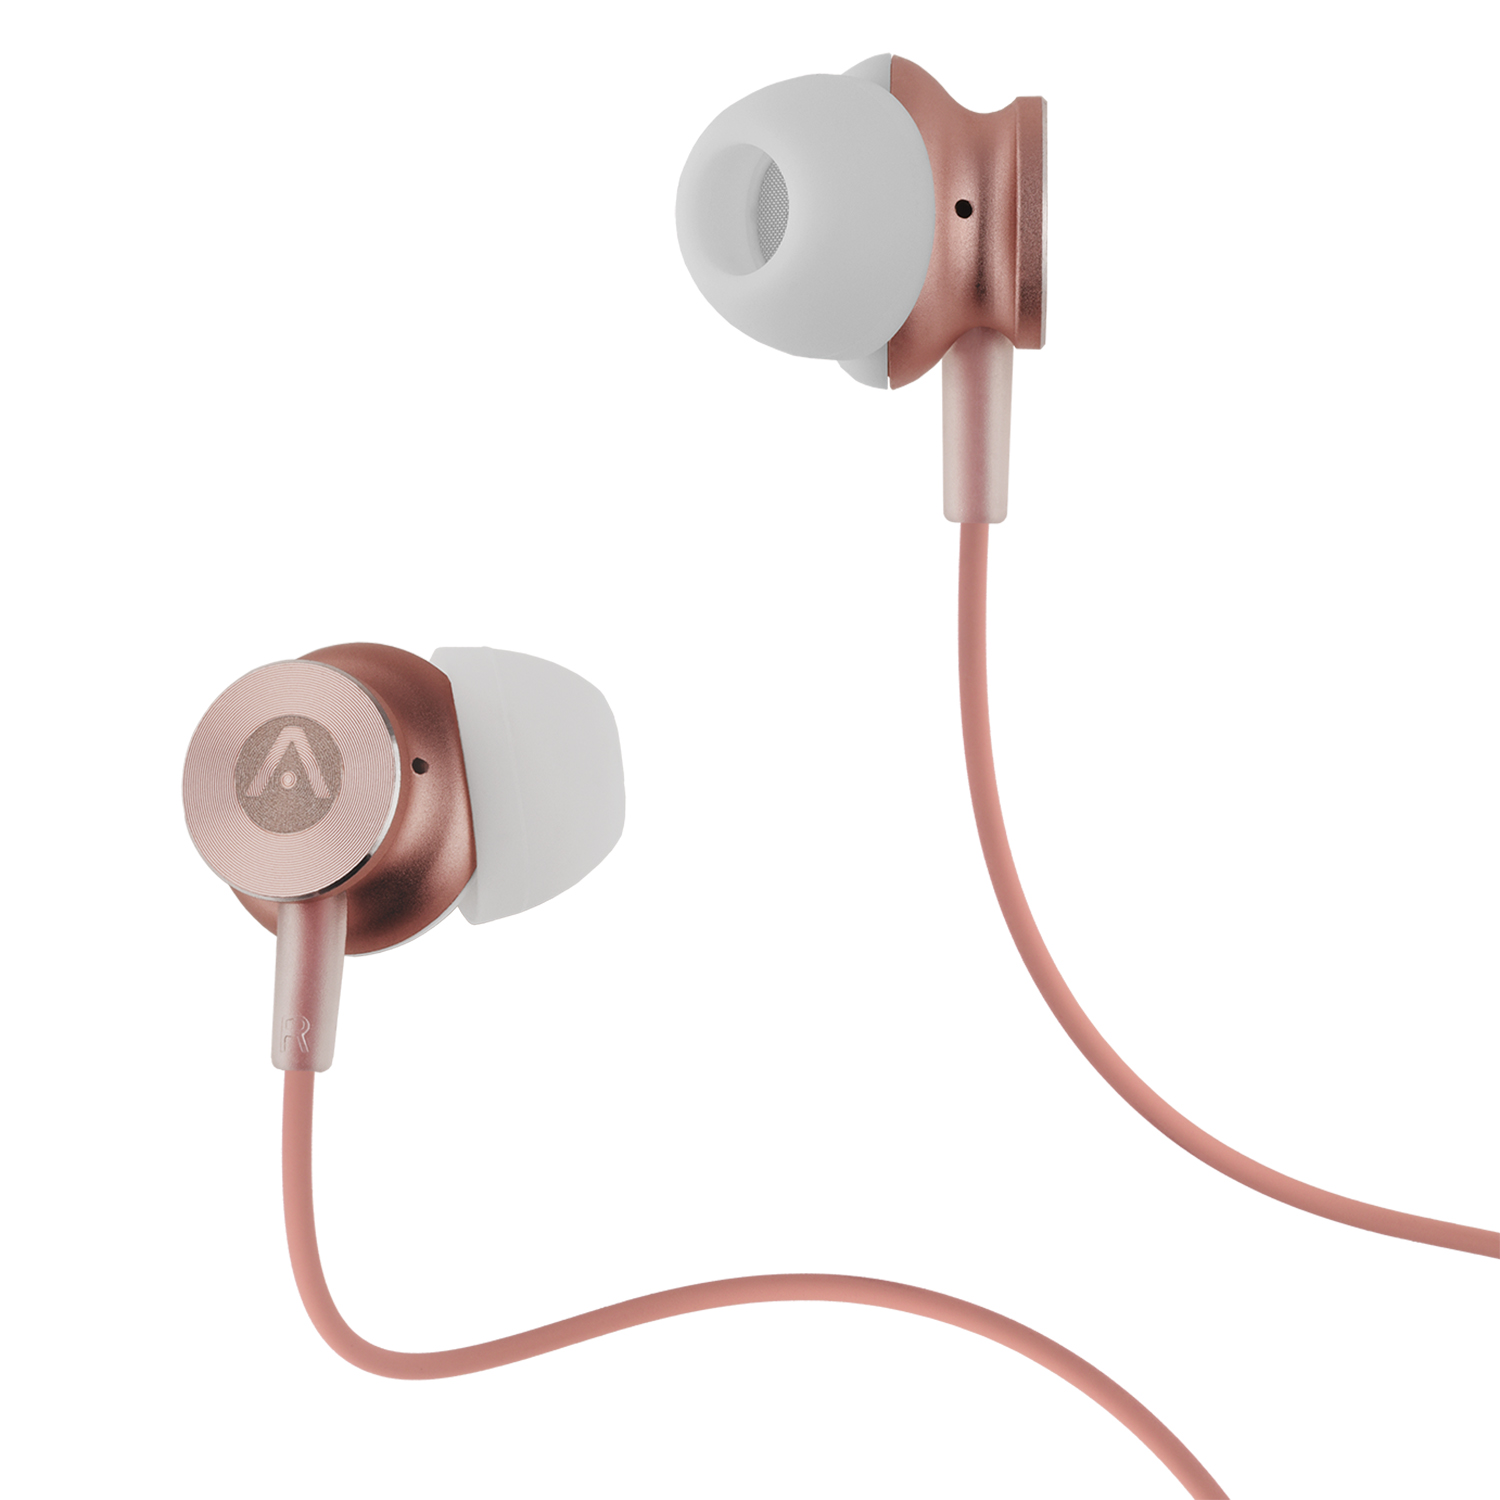 Image for Audiomate A180 Hi-Fi Stereo Earphones - Pink from Circuit City